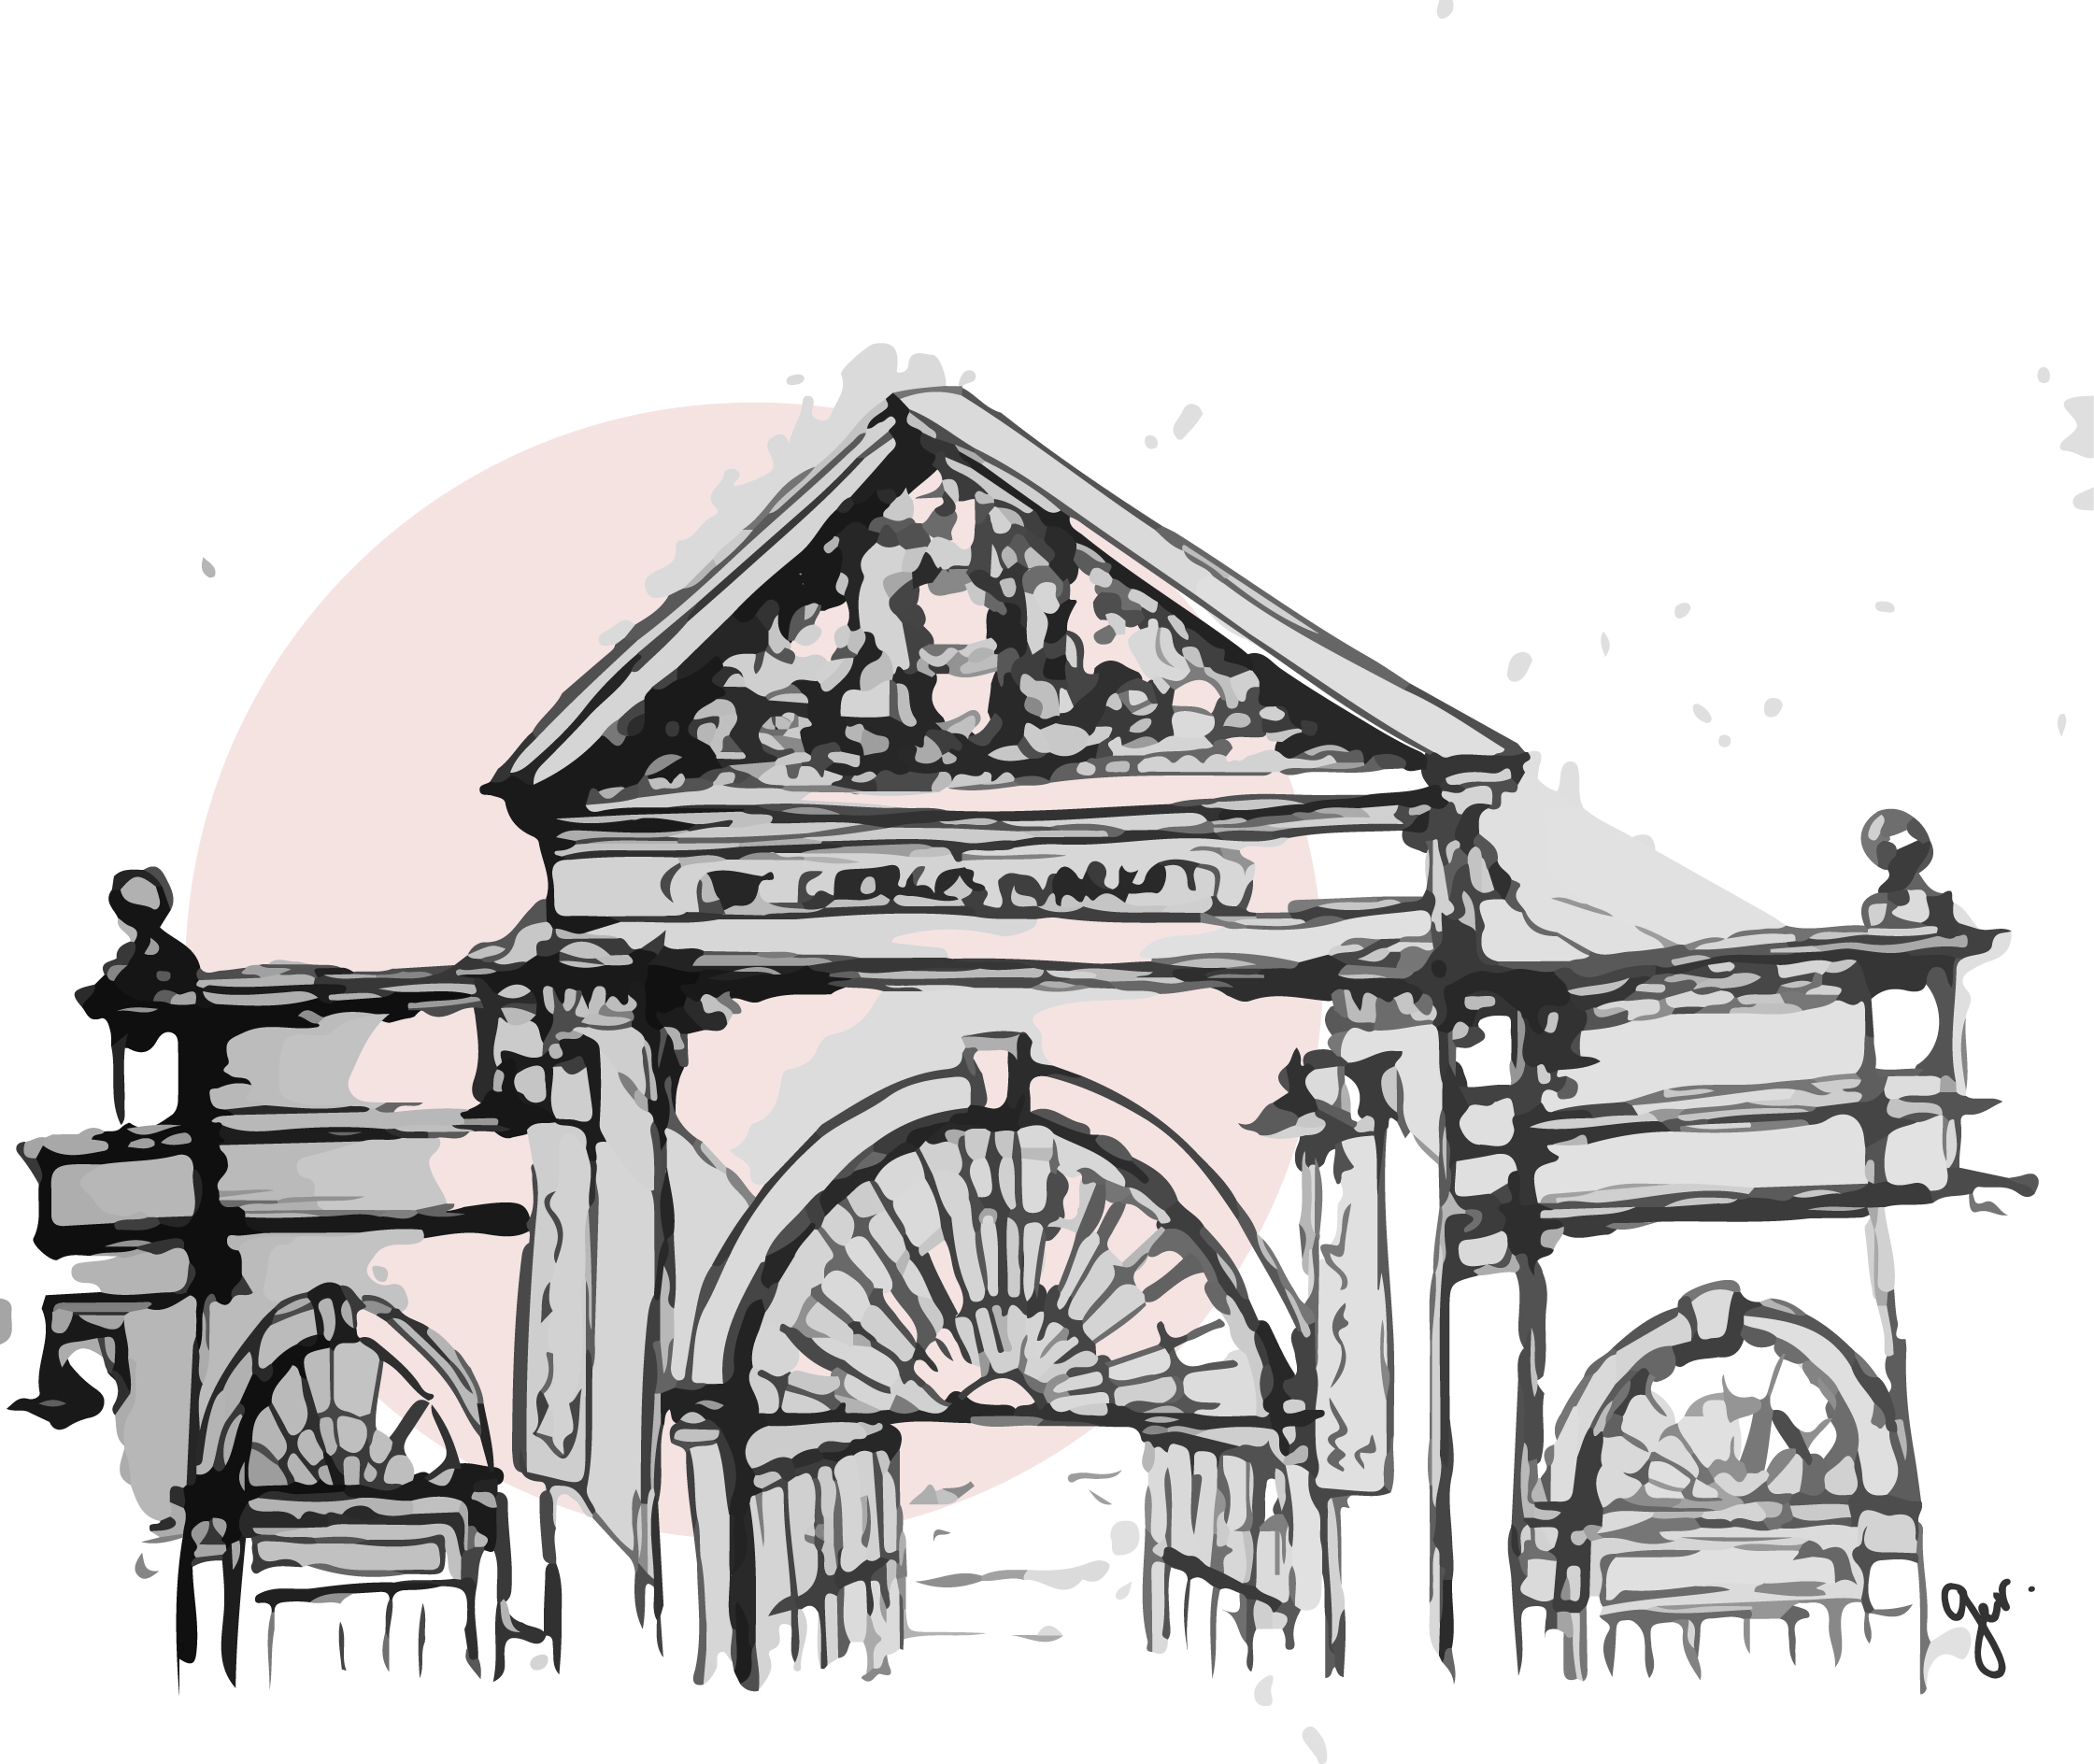 ST.GEORGE'S MARKET sketch by G